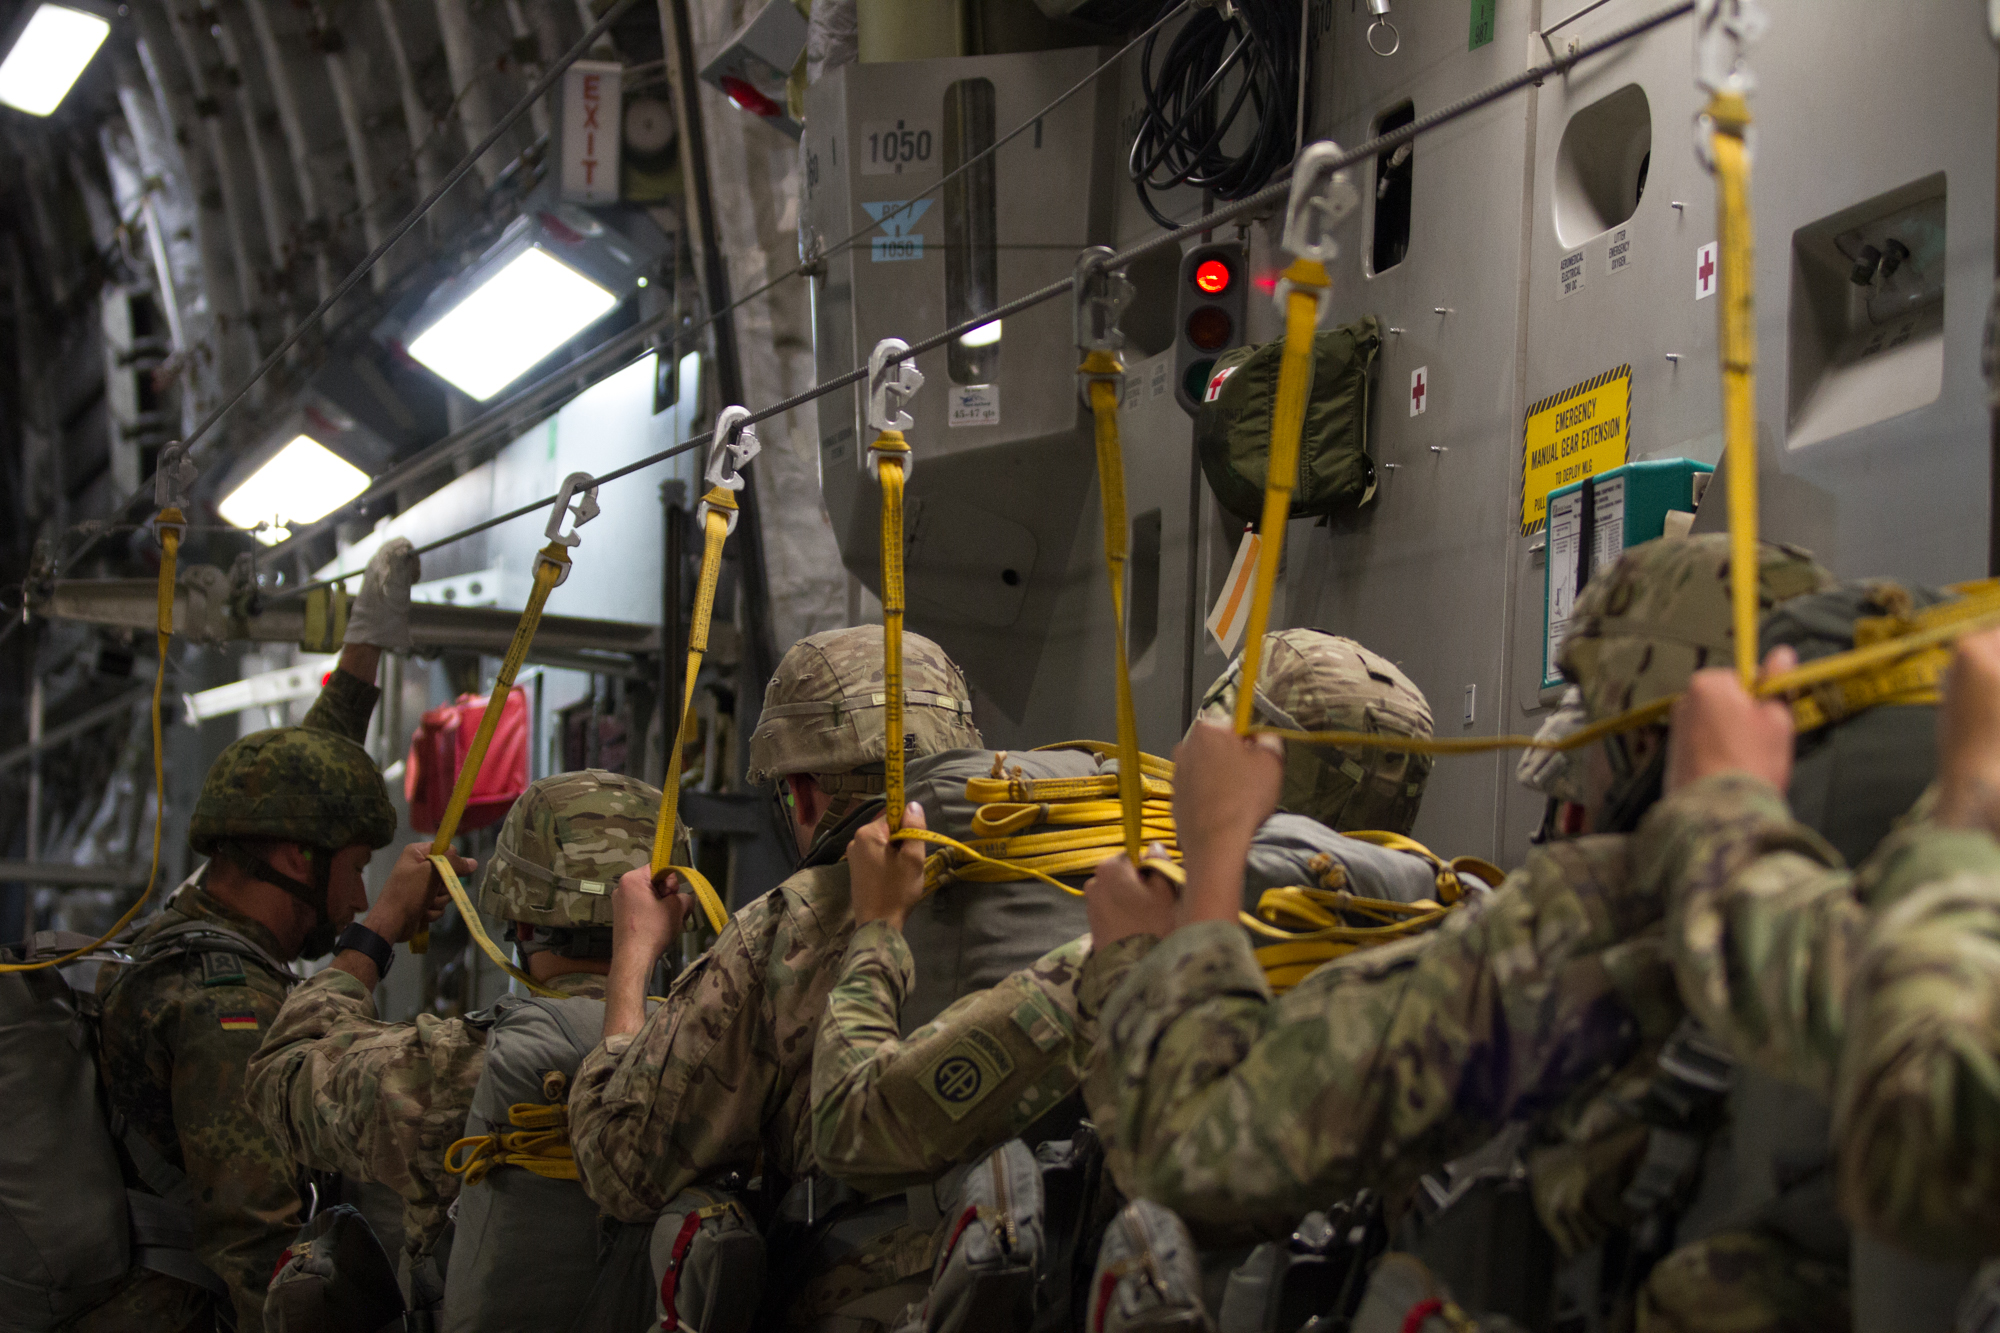 Paratroopers with the 82nd Airborne Division walk towards the jump door during a training jump at Fort Bragg, N.C. on July 26, 2017.